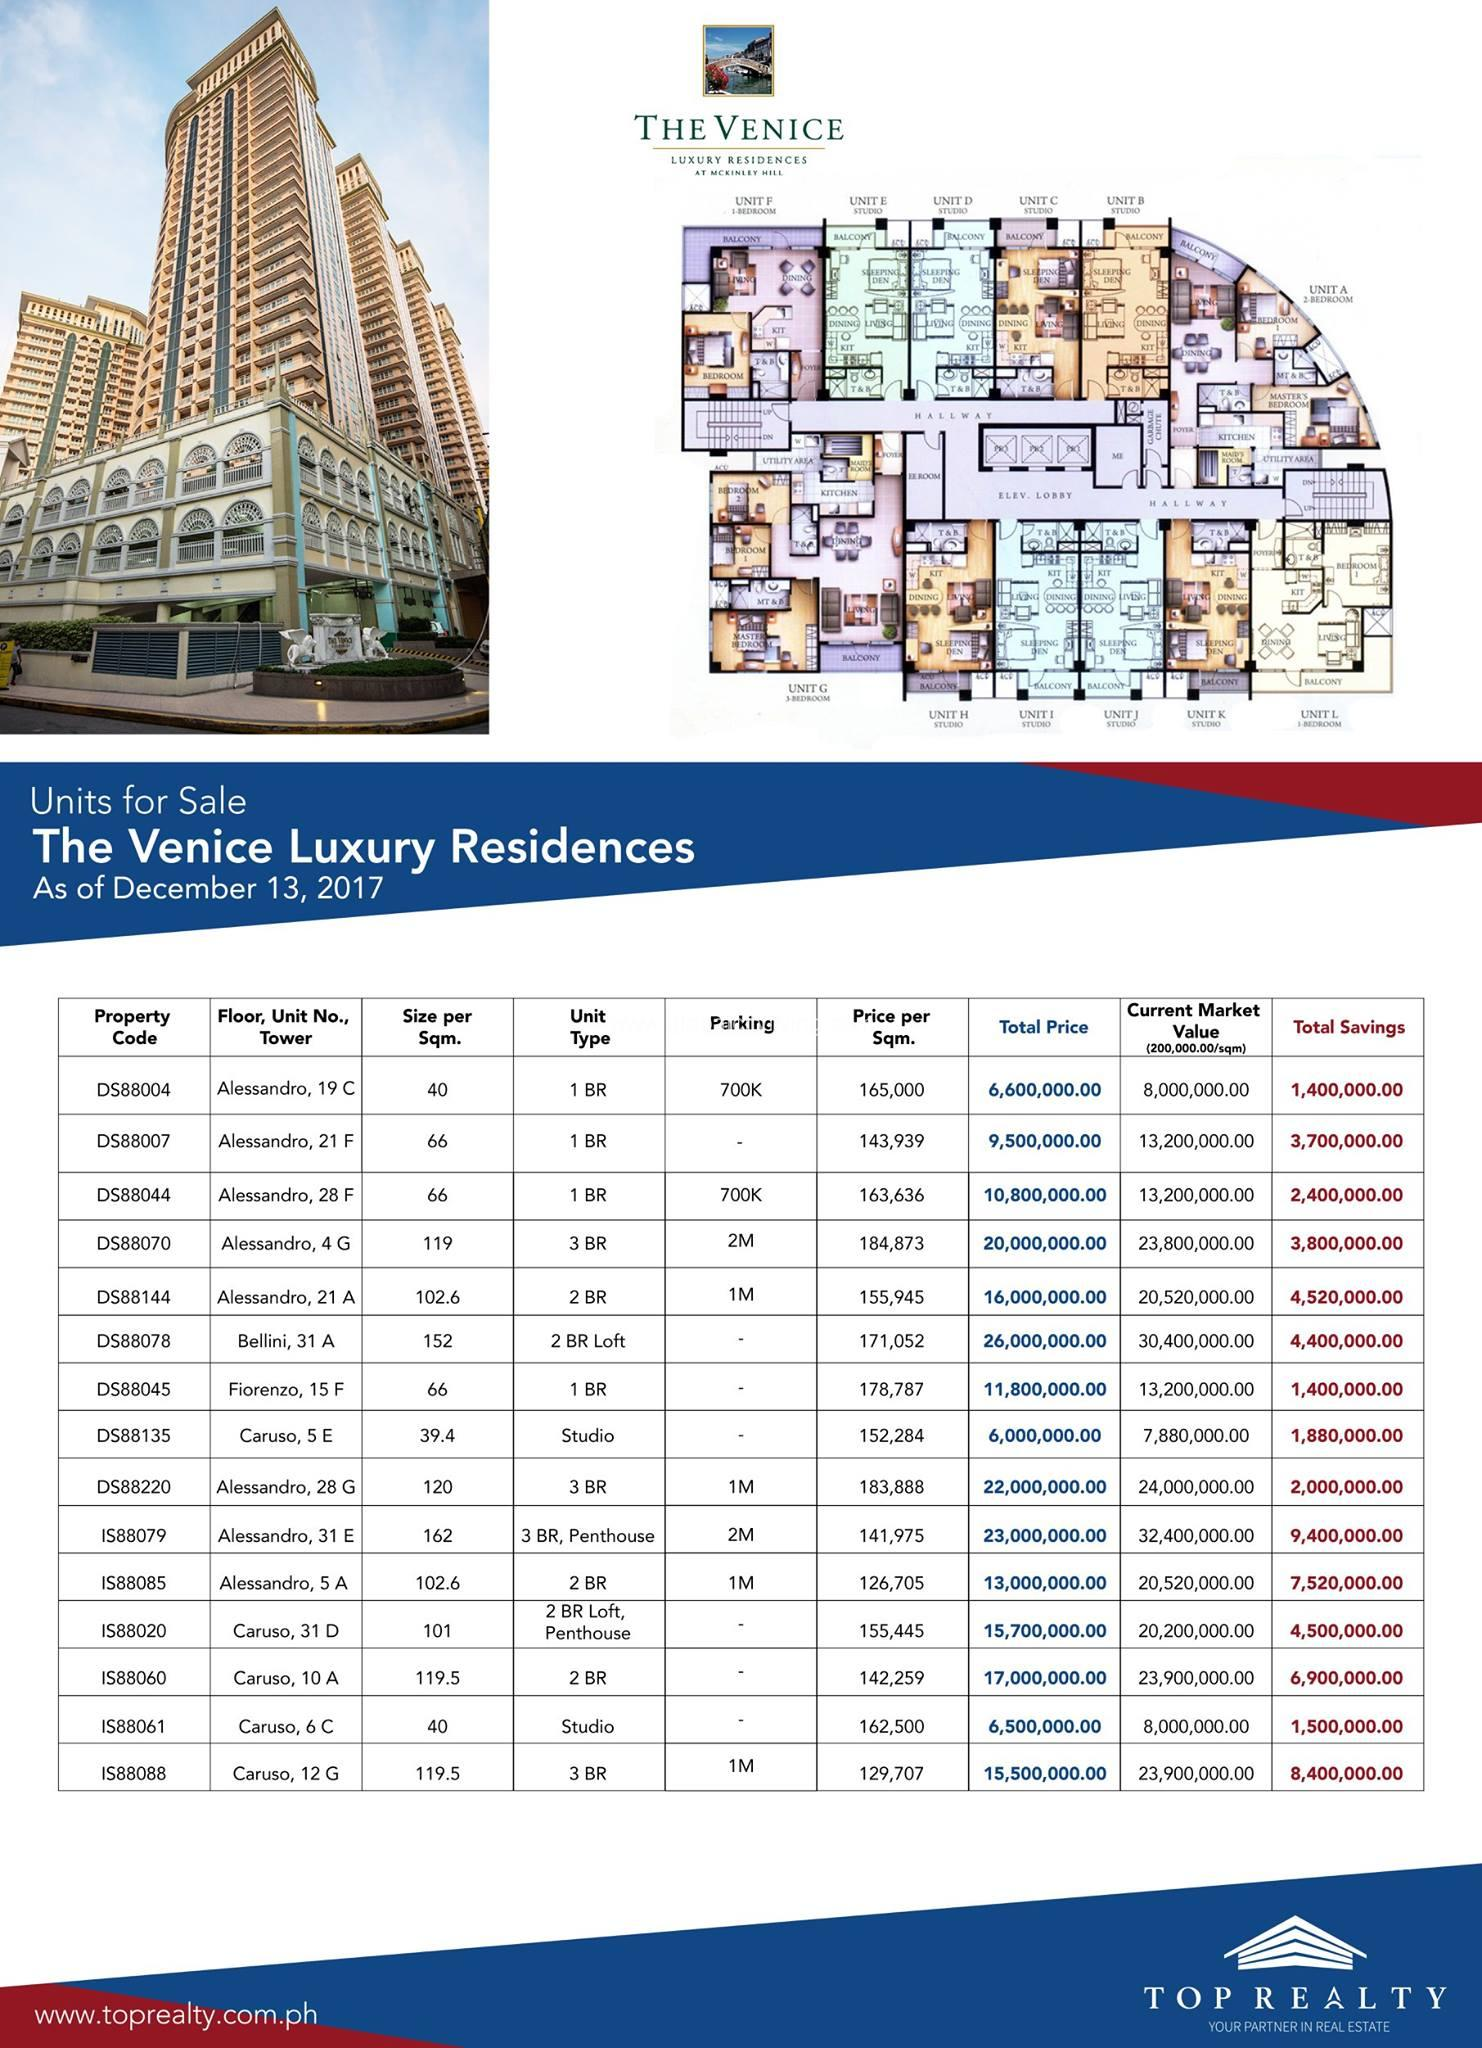 the venice luxury residences price list fort bonifacio global city taguig